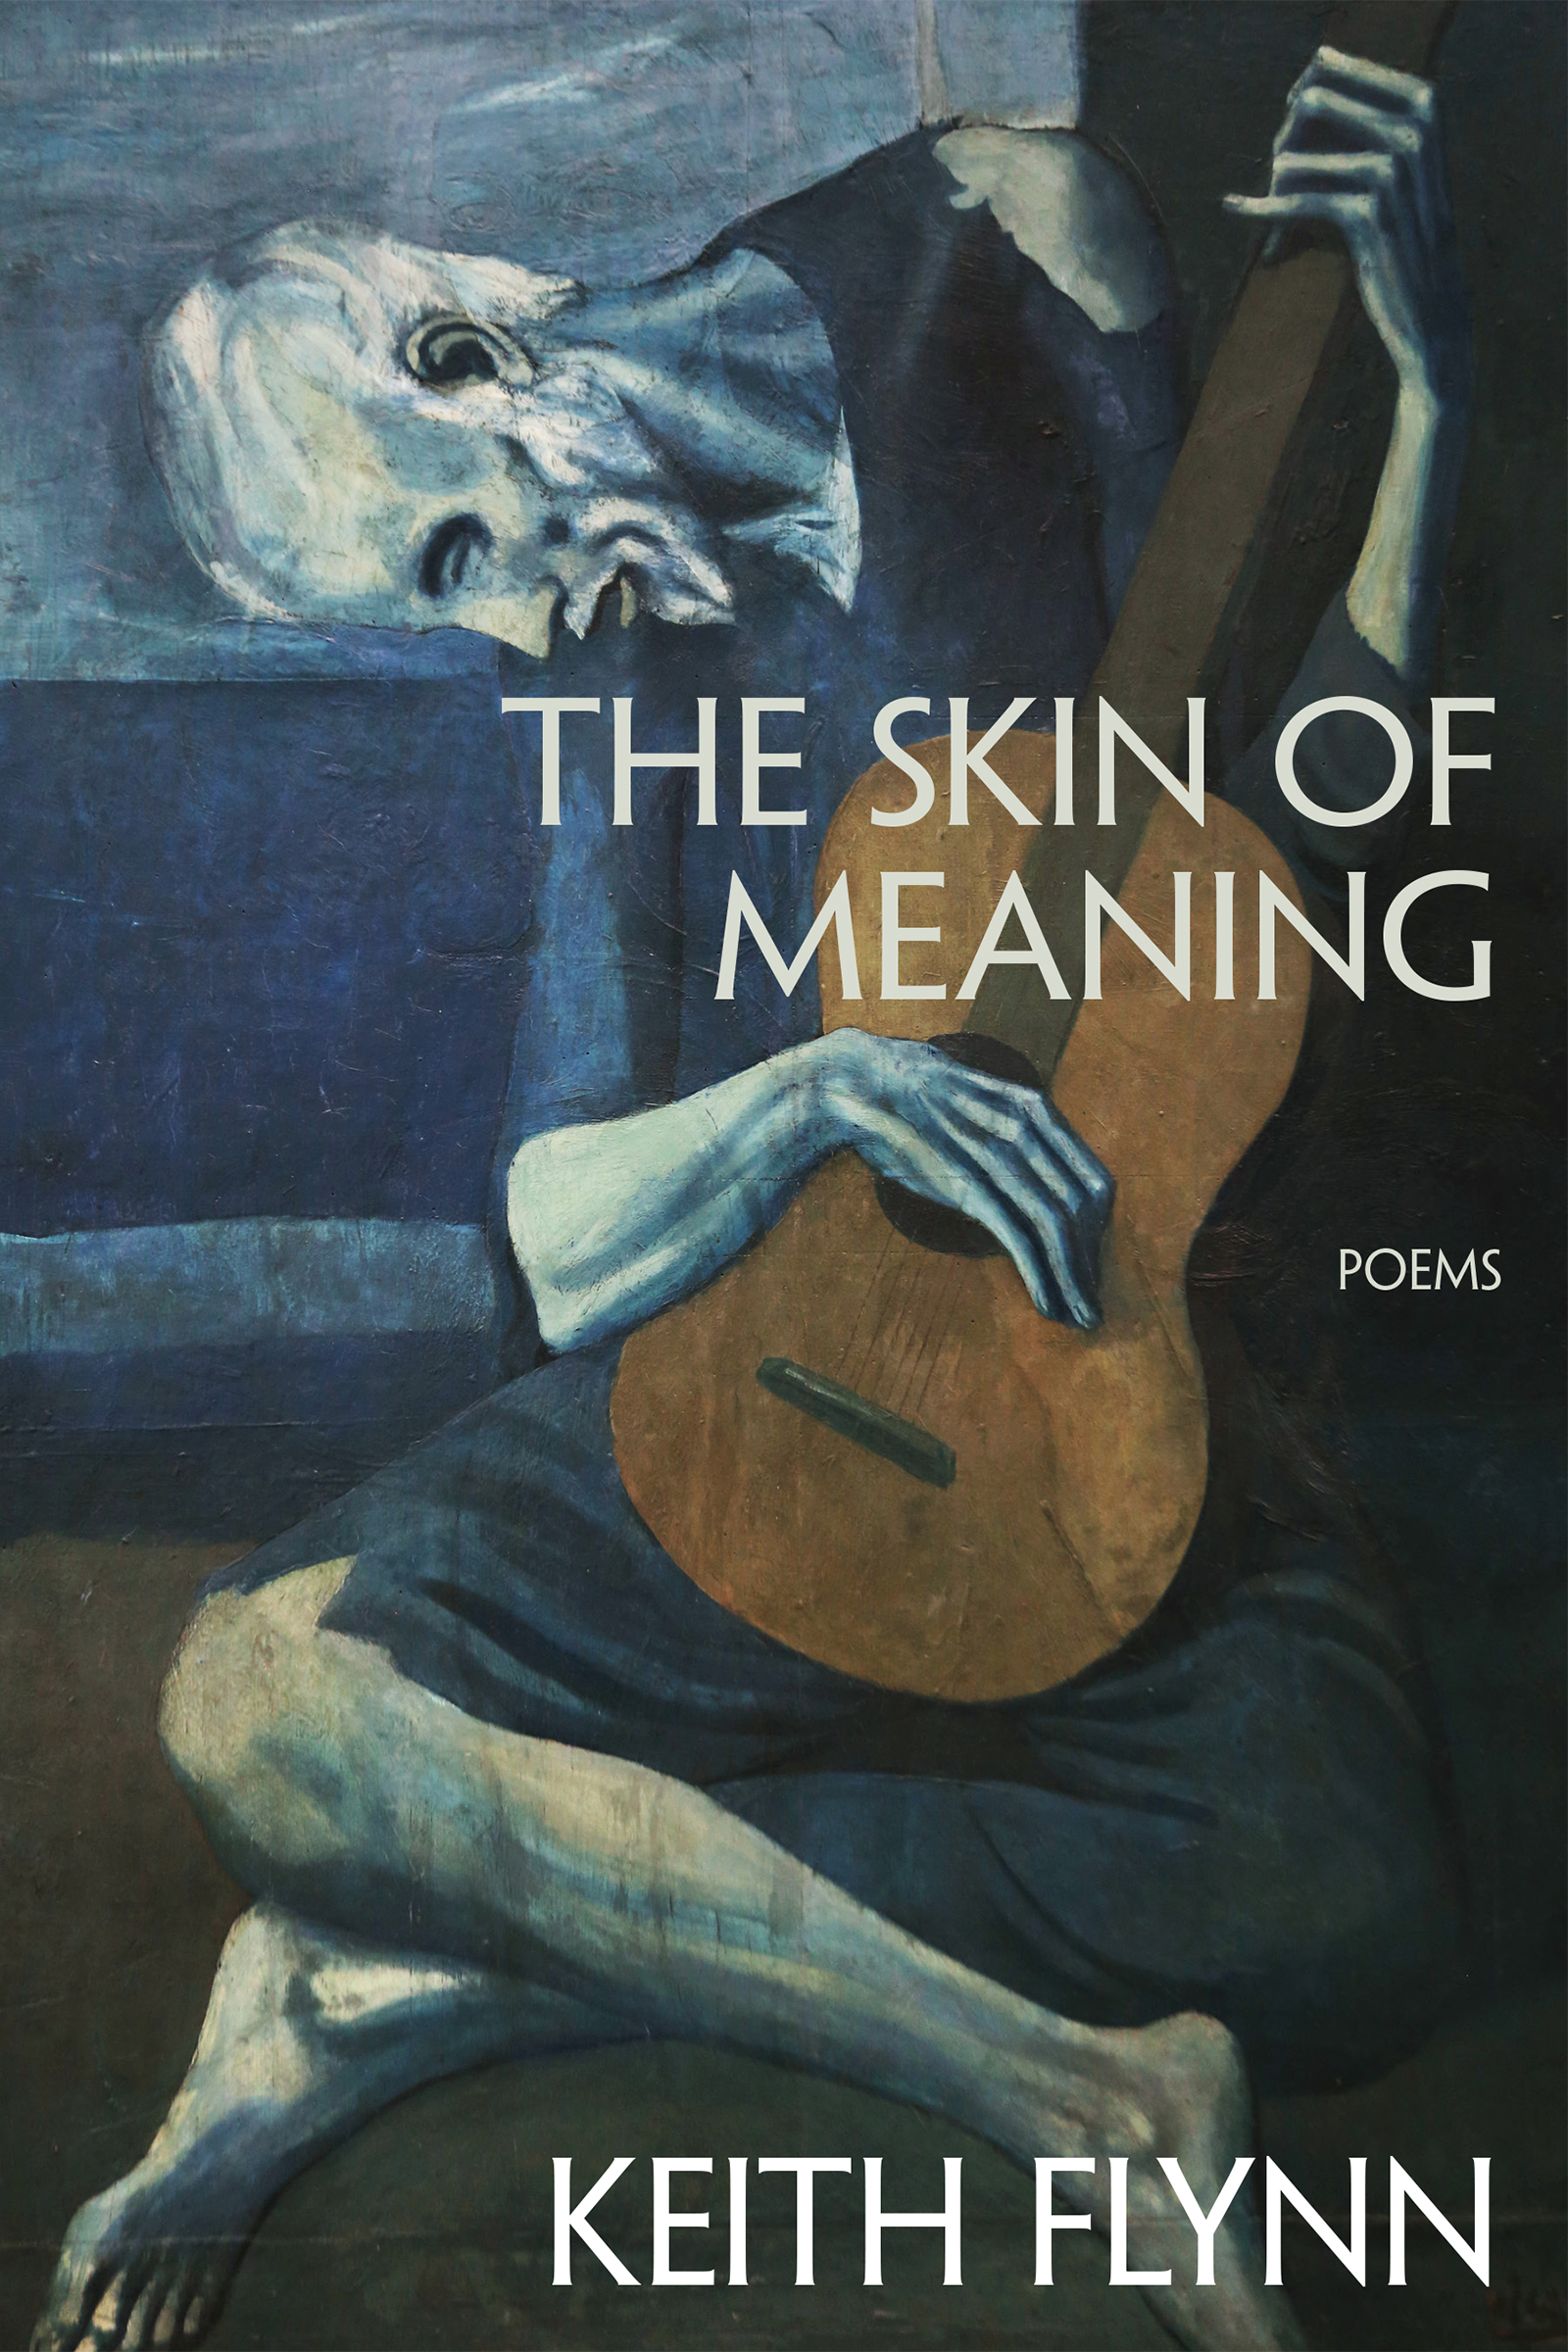 A painting of an older man playing the guitar wearing old, ripped clothing, and white script that reads The Skin of Meaning poems by Keith Flynn.